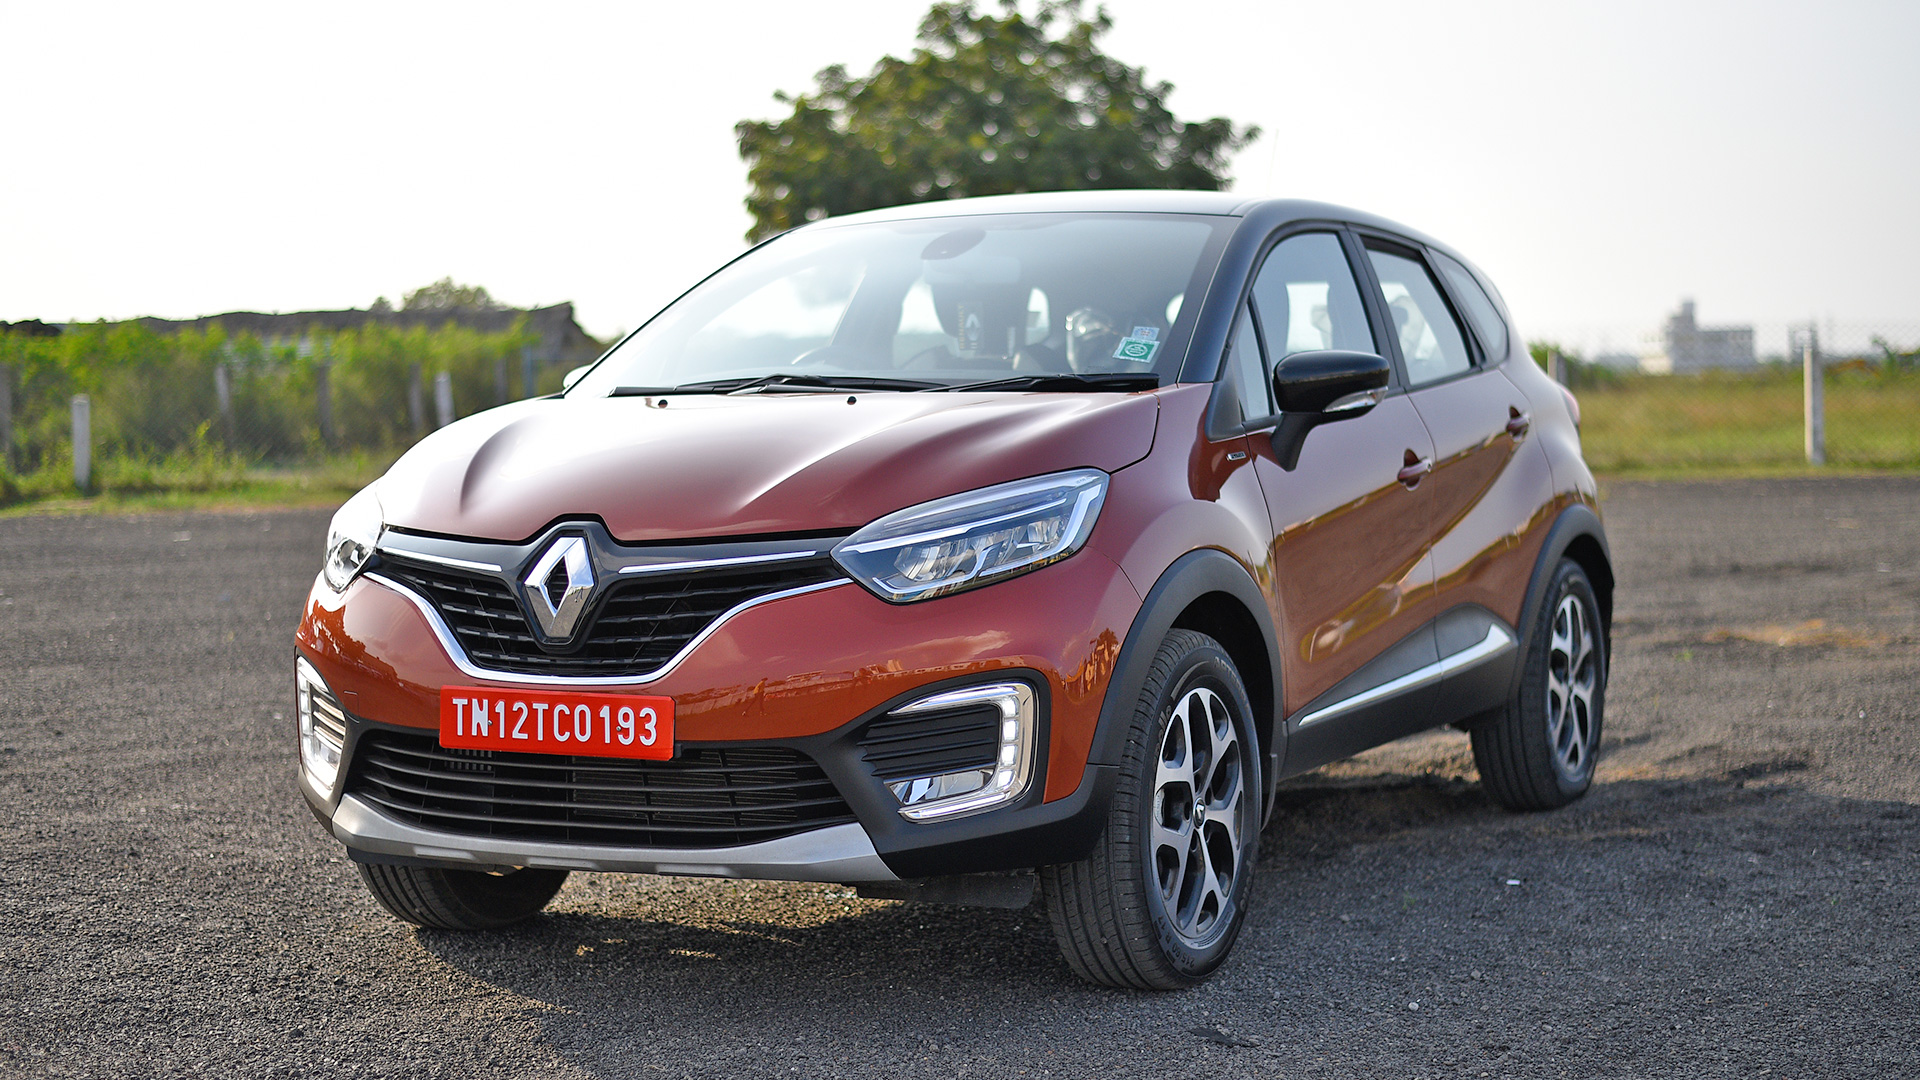 renault captur 2018 diesel rxe price mileage reviews specification gallery overdrive. Black Bedroom Furniture Sets. Home Design Ideas